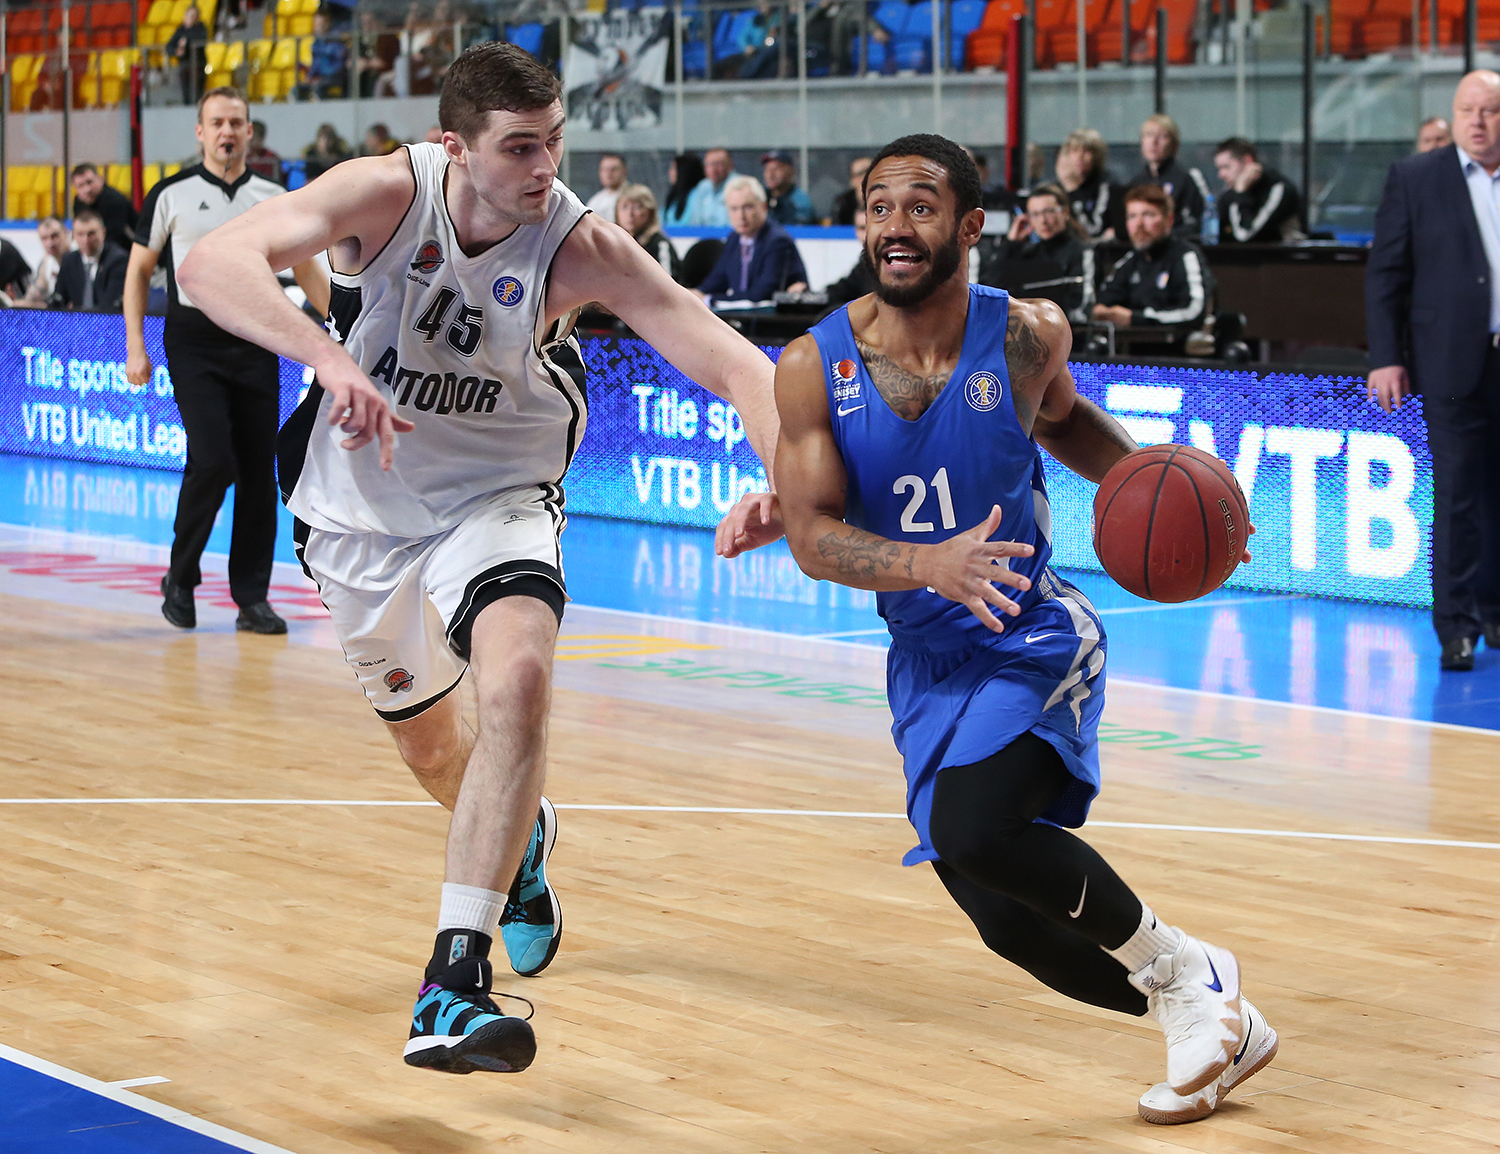 Enisey Takes 9th Place At Avtodor's Expense